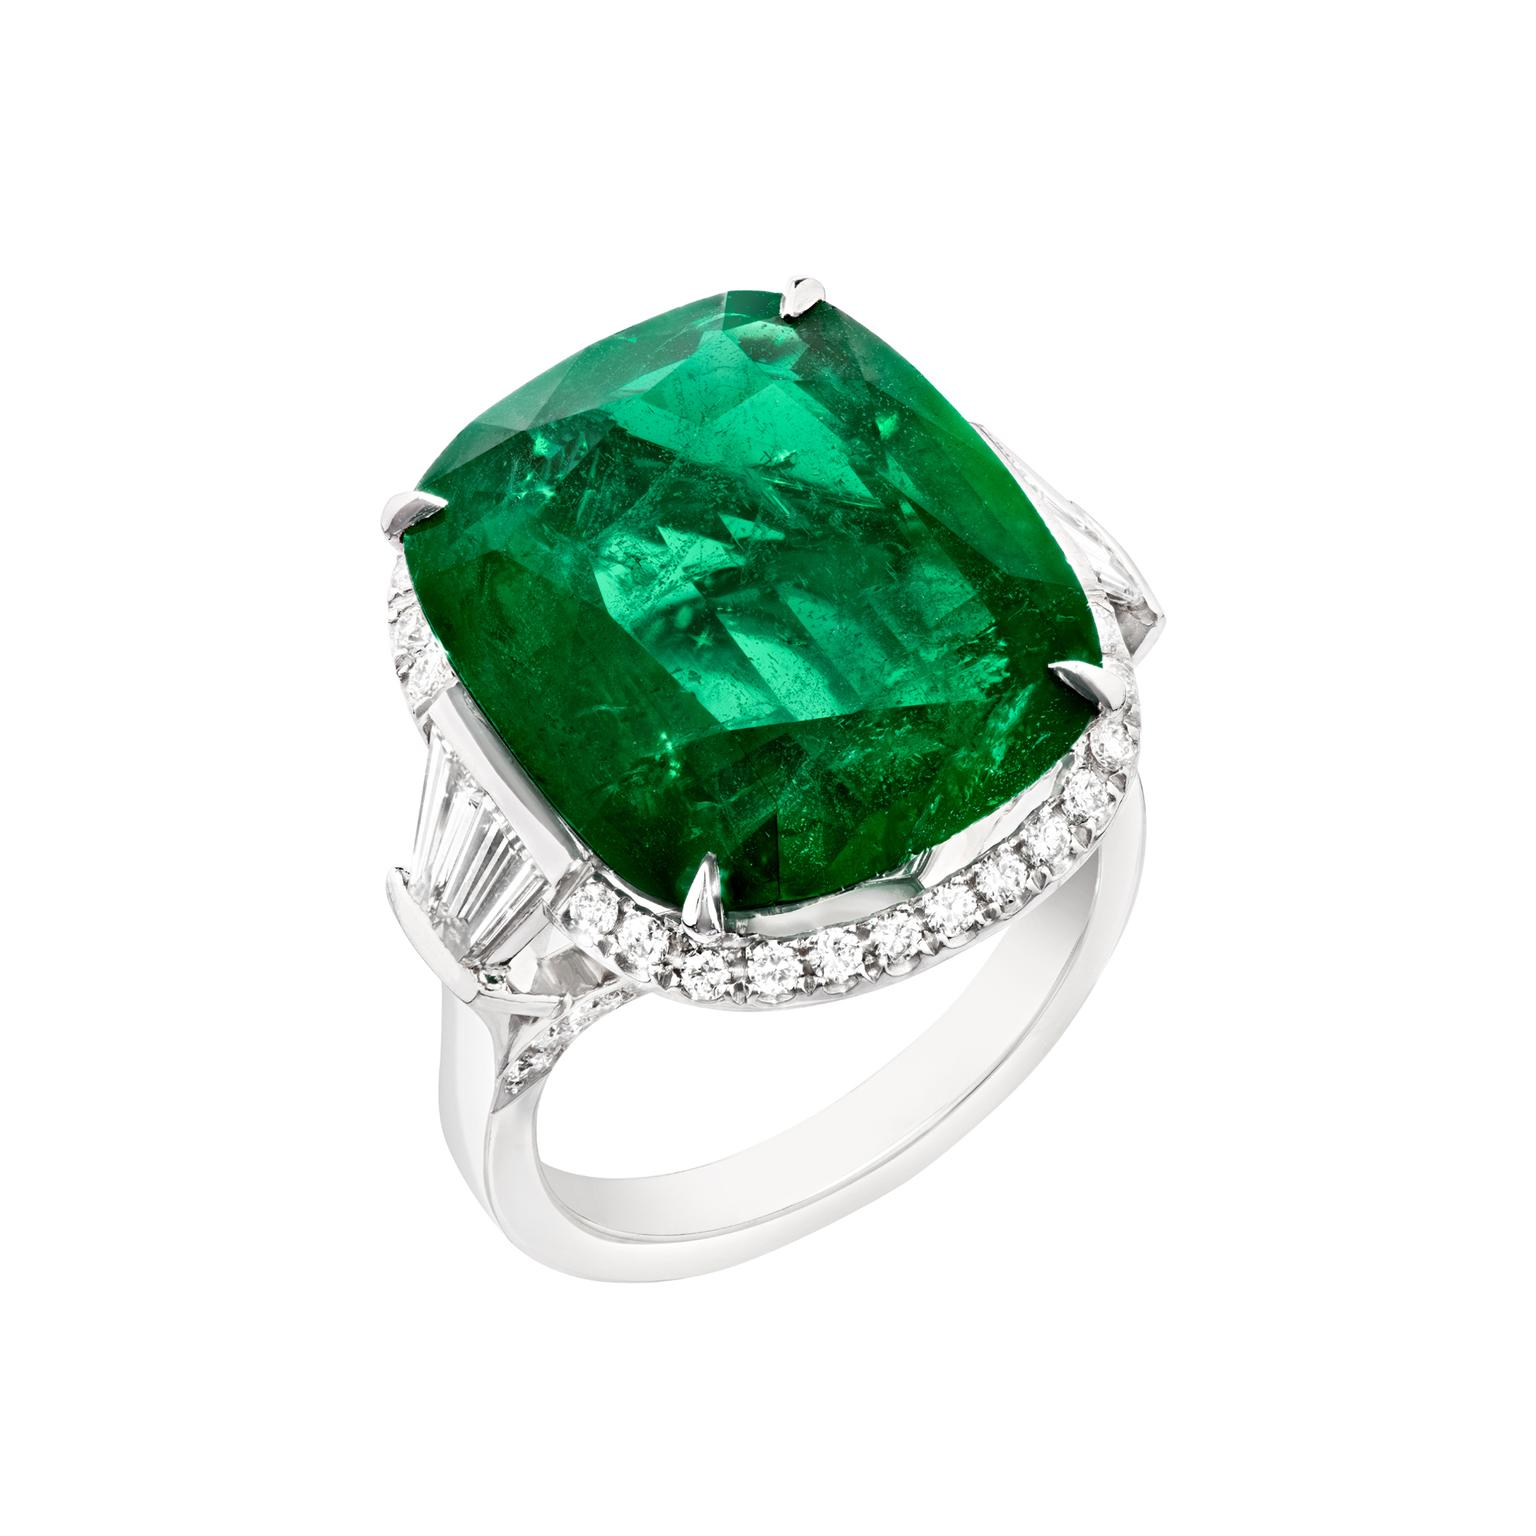 Fabergé Devotion emerald ring 11.44ct